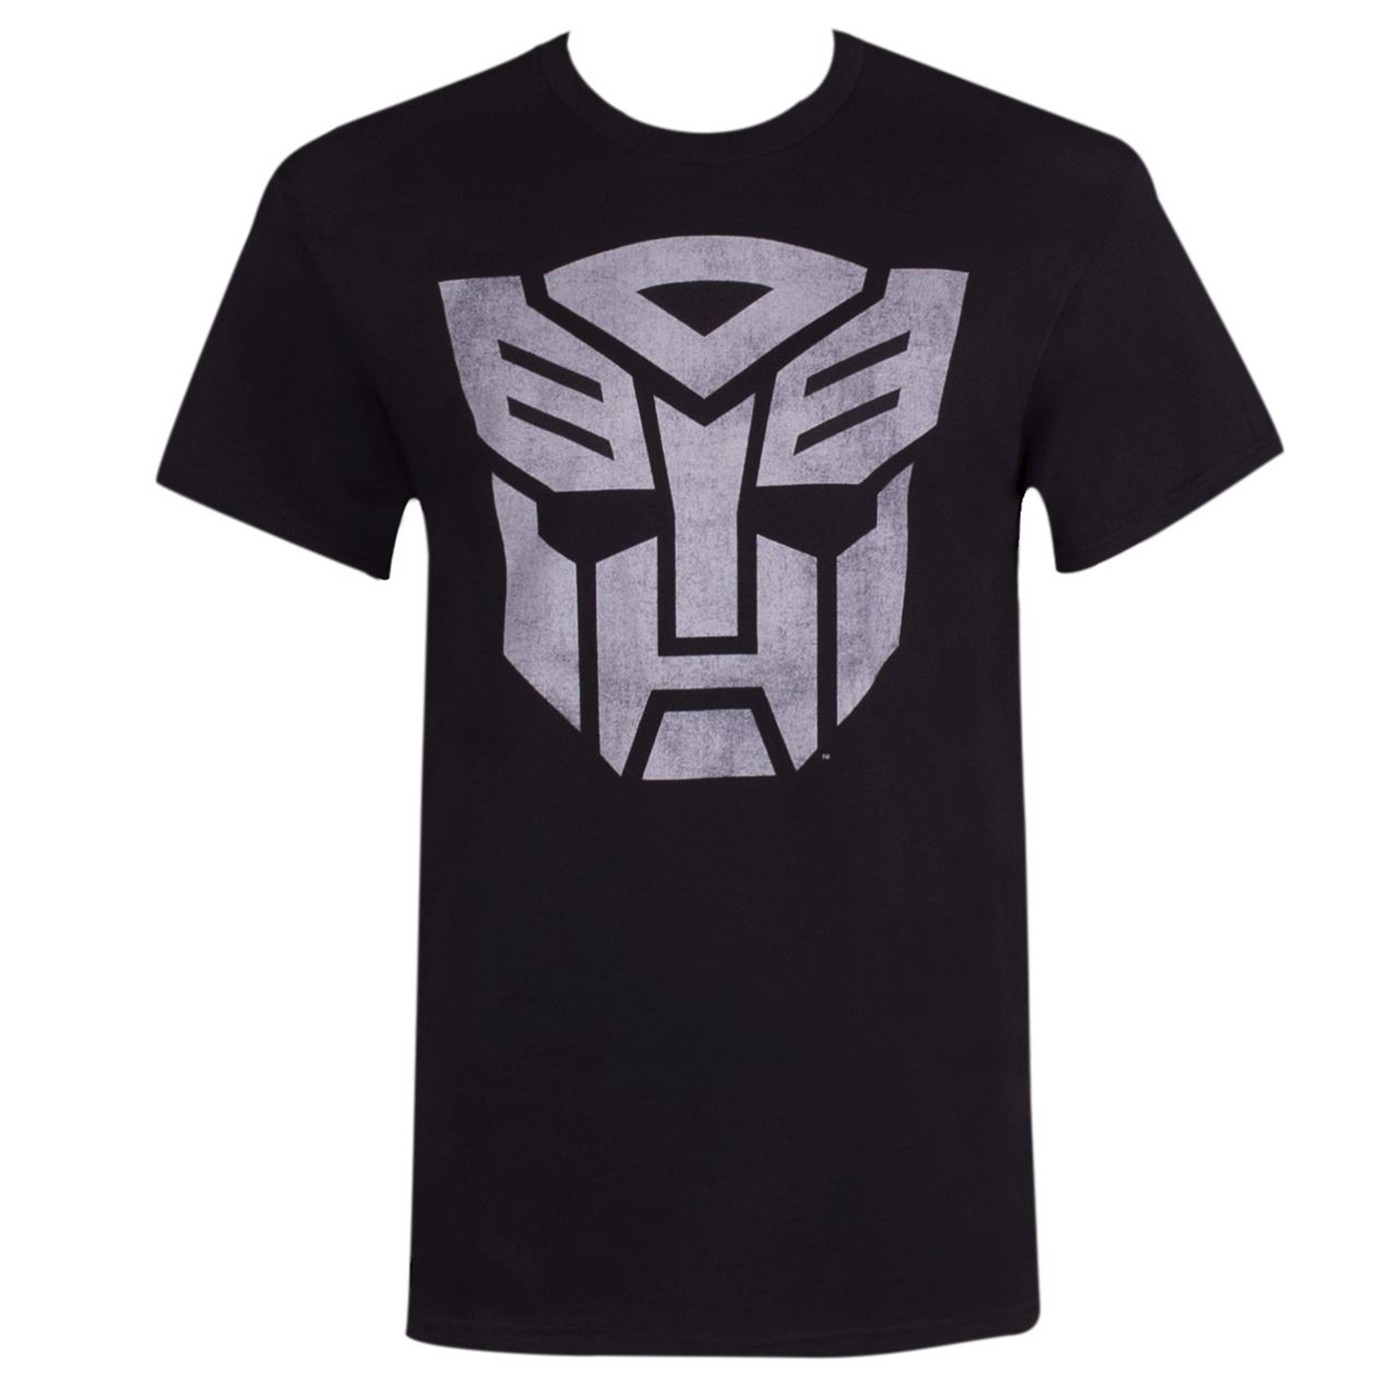 Autobots Transformers Decepticons Men's Black T-shirt